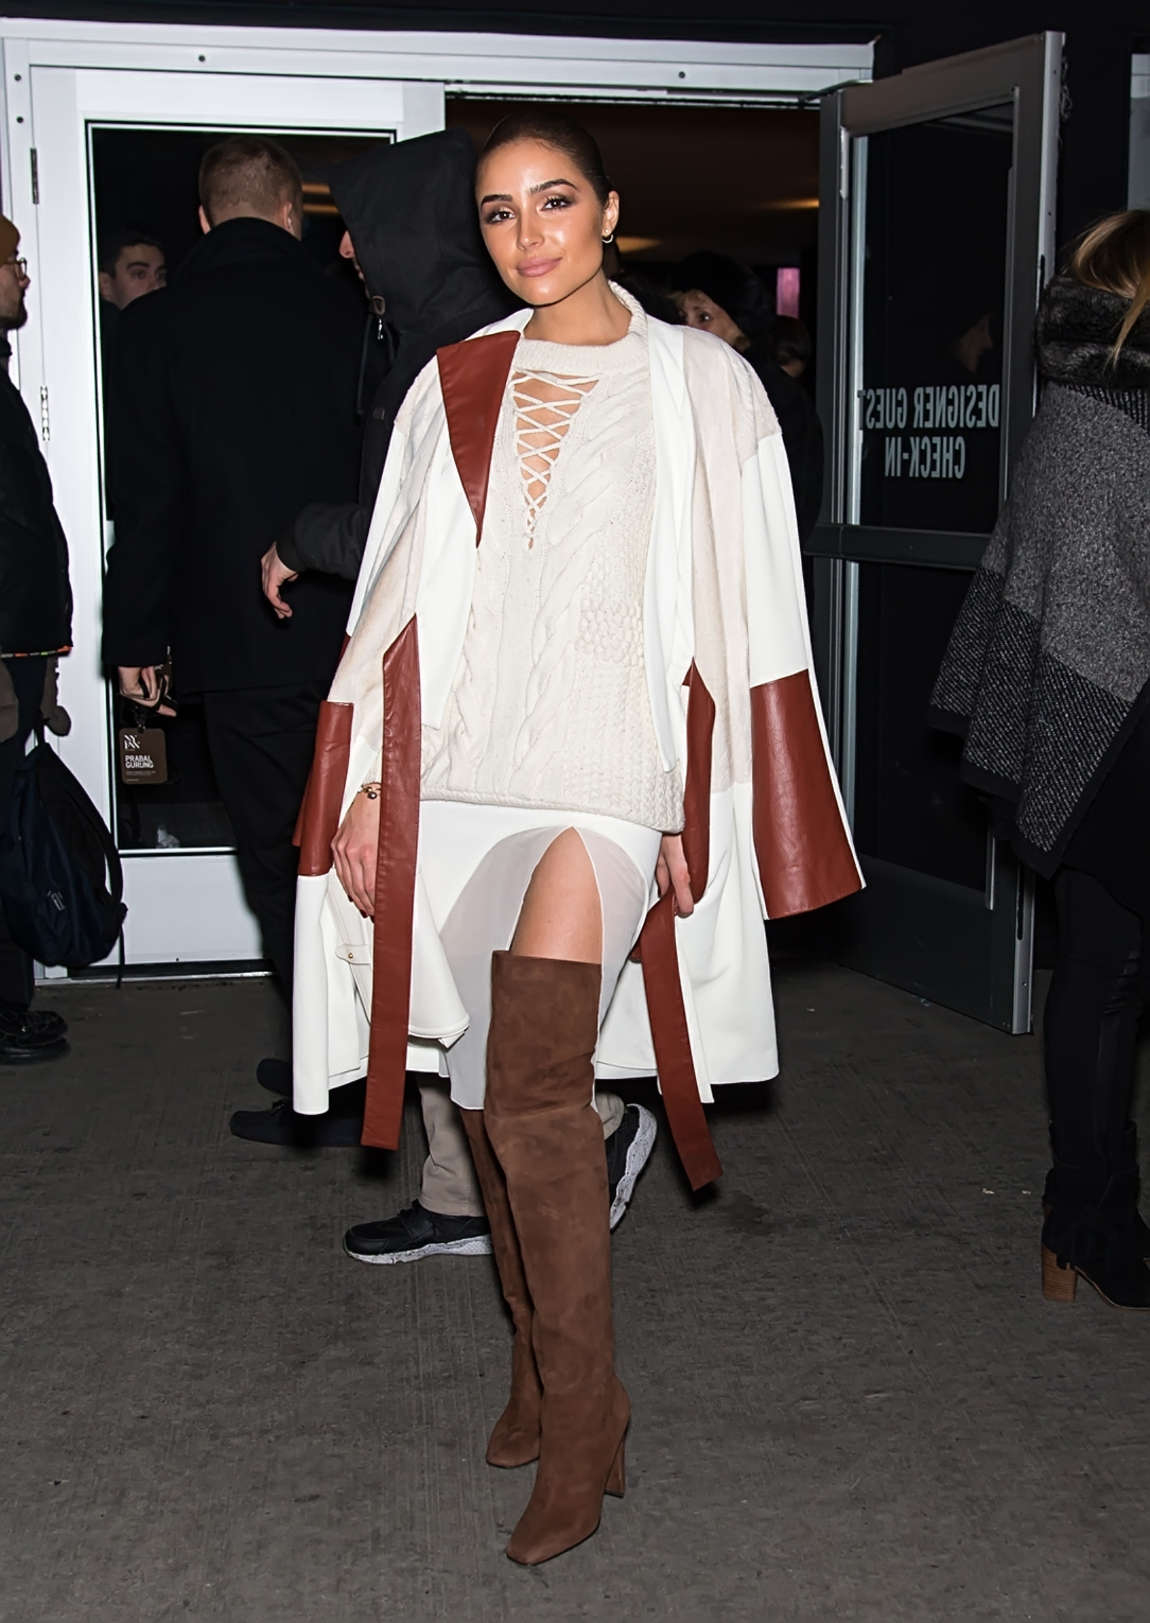 Olivia Culpo 2016 : Olivia Culpo: Leaving Prabal Gurung 2016 Fashion Show -02